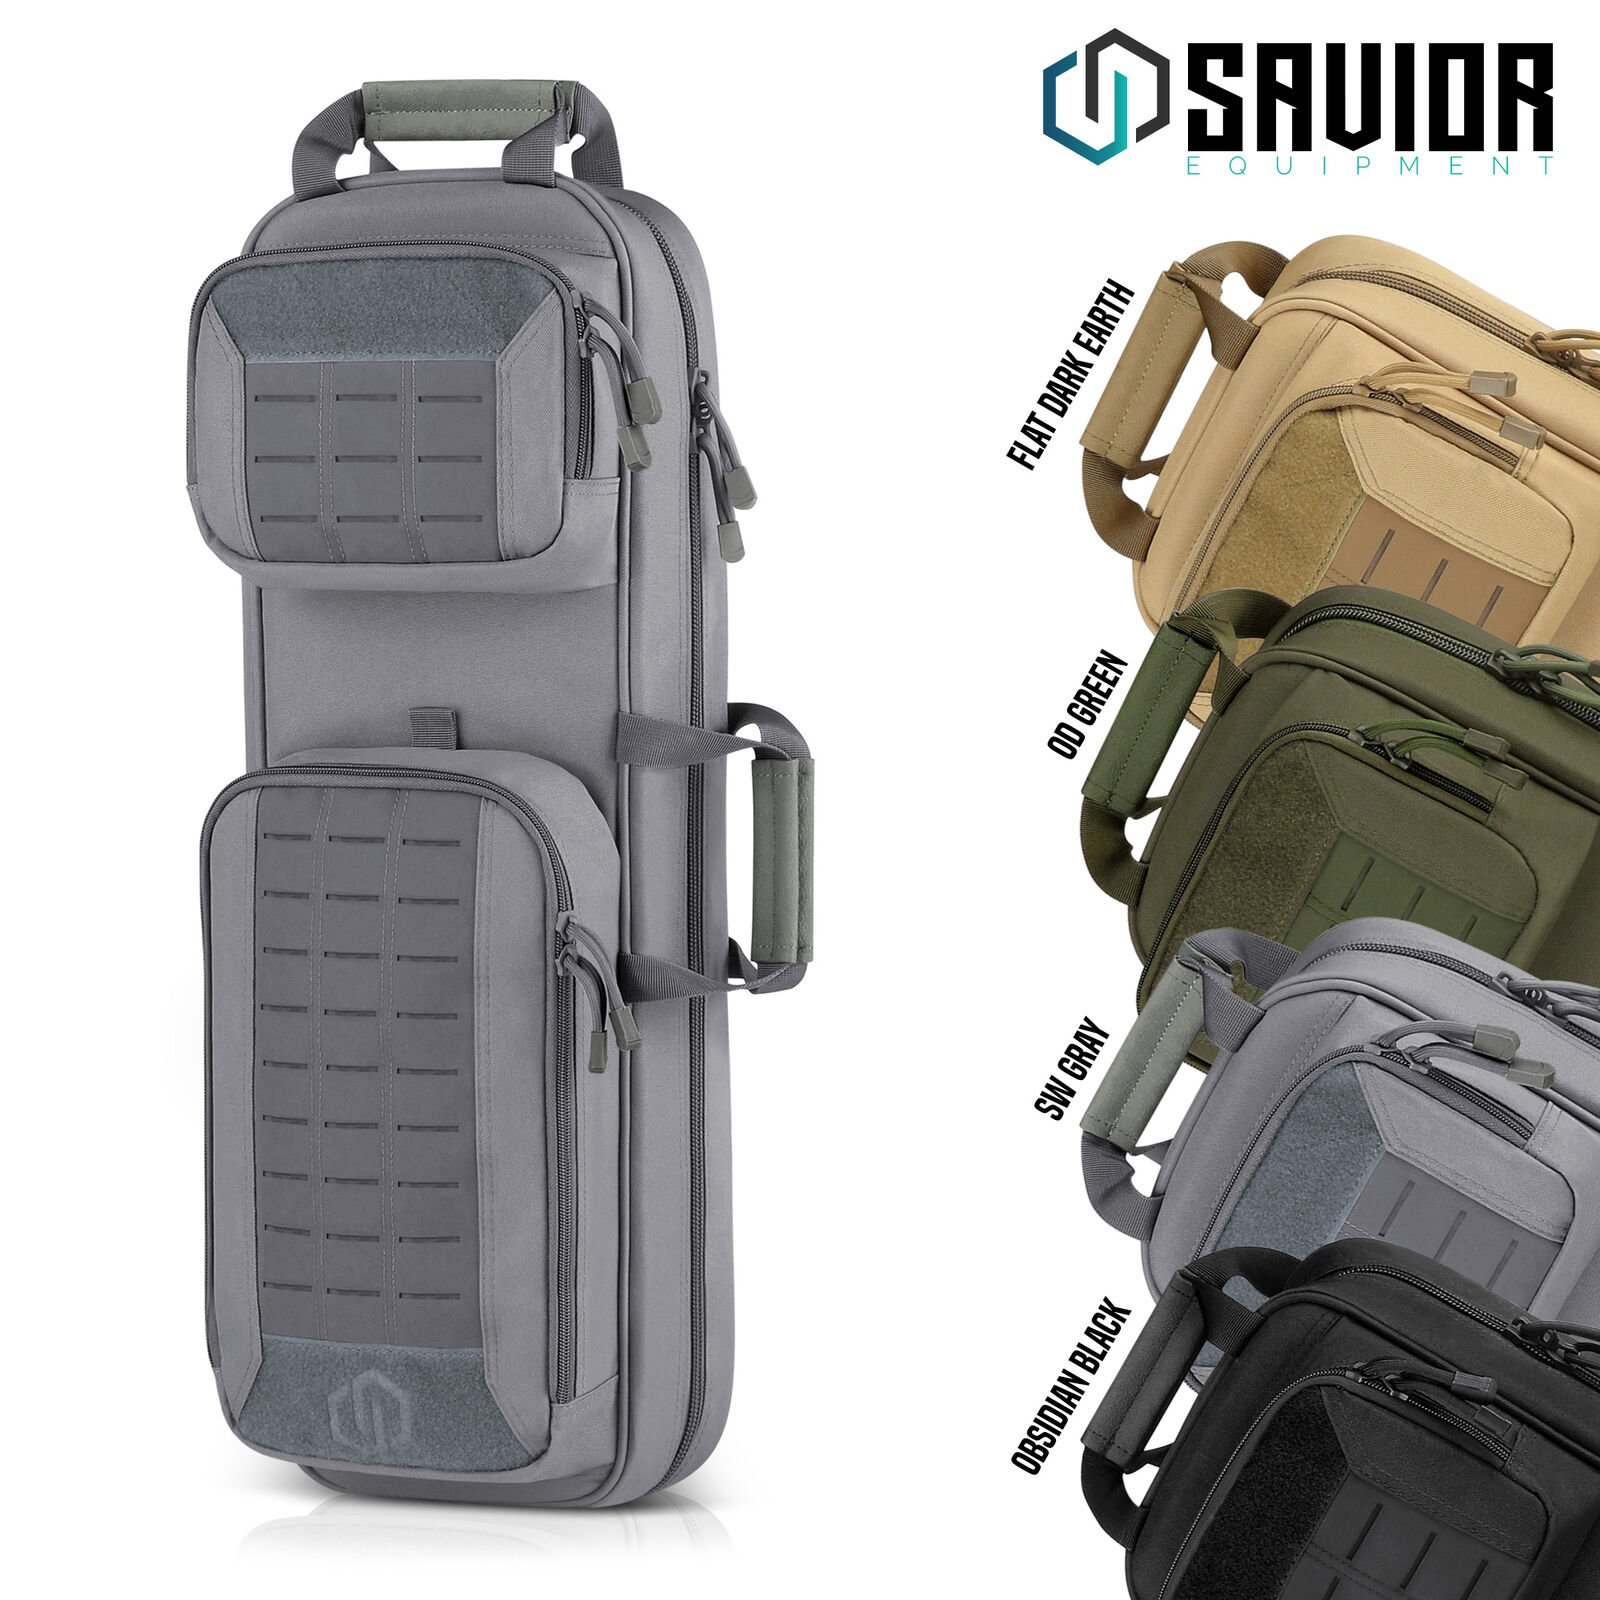 Savior Tactical Urban Takedown Bag Carbine Rifle Padded Shotgun Firear...